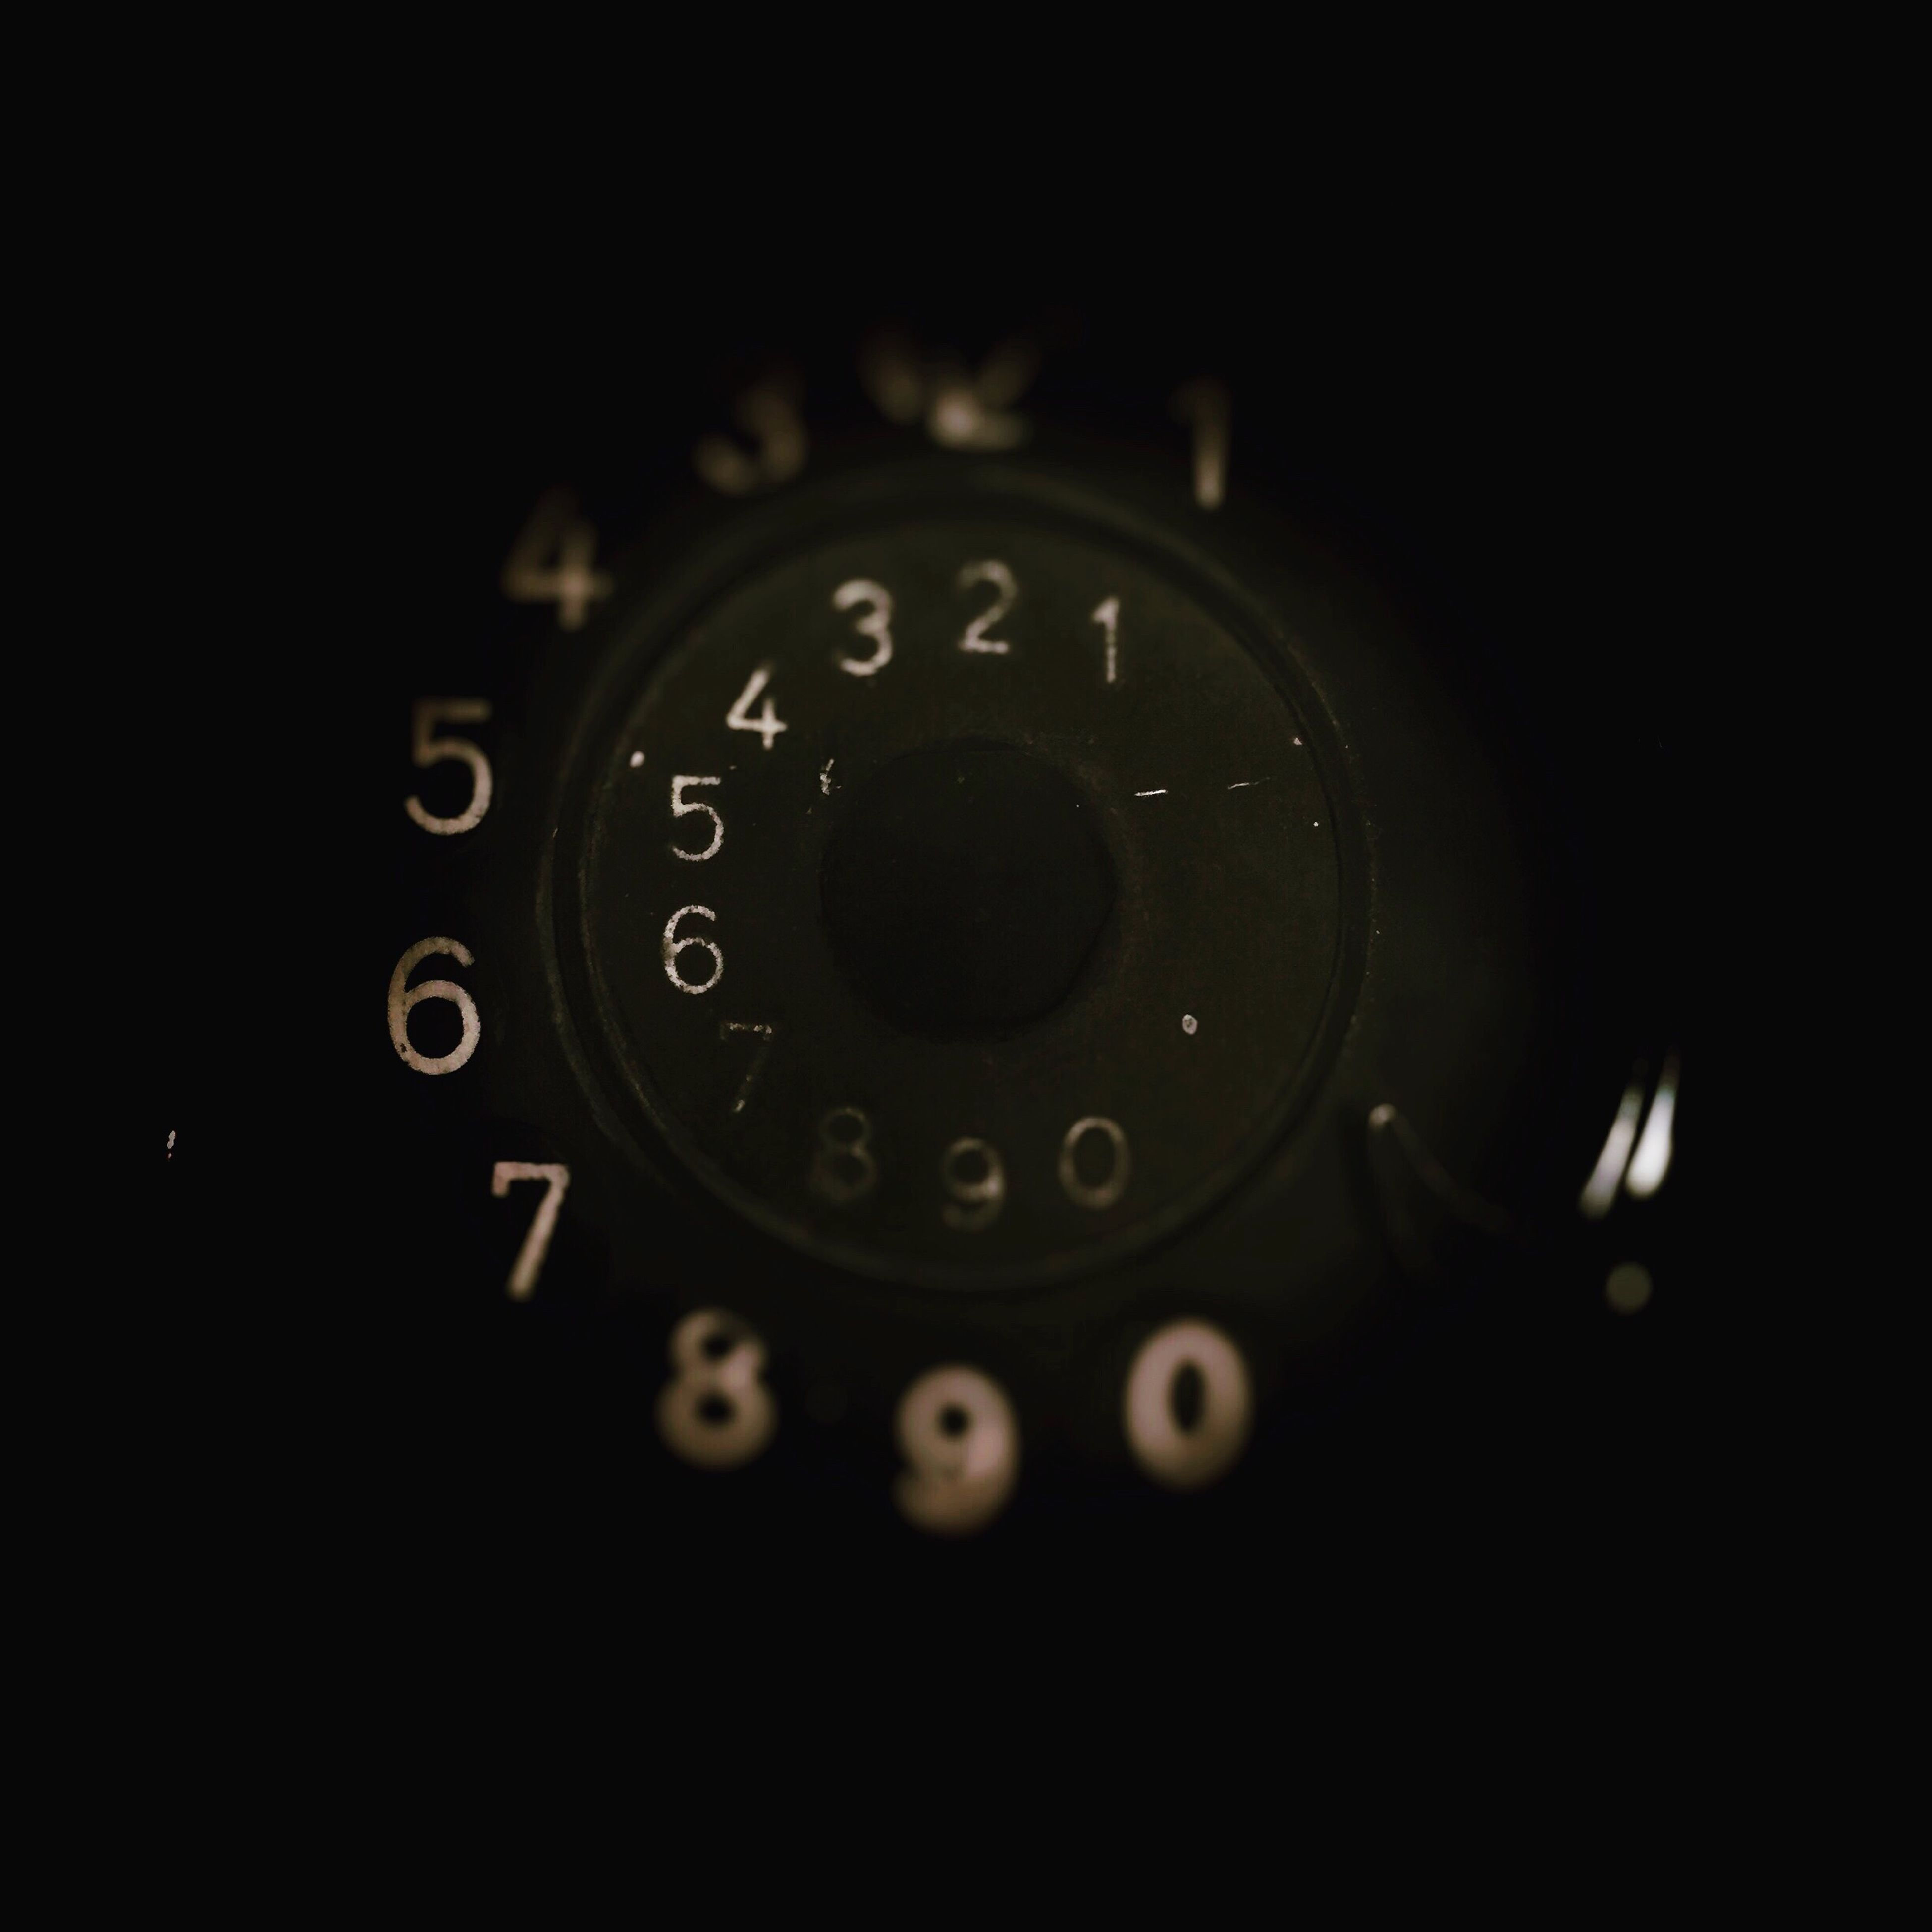 indoors, close-up, technology, old-fashioned, number, retro styled, clock, time, metal, circle, accuracy, old, connection, machine part, single object, antique, no people, camera - photographic equipment, lens - optical instrument, telephone